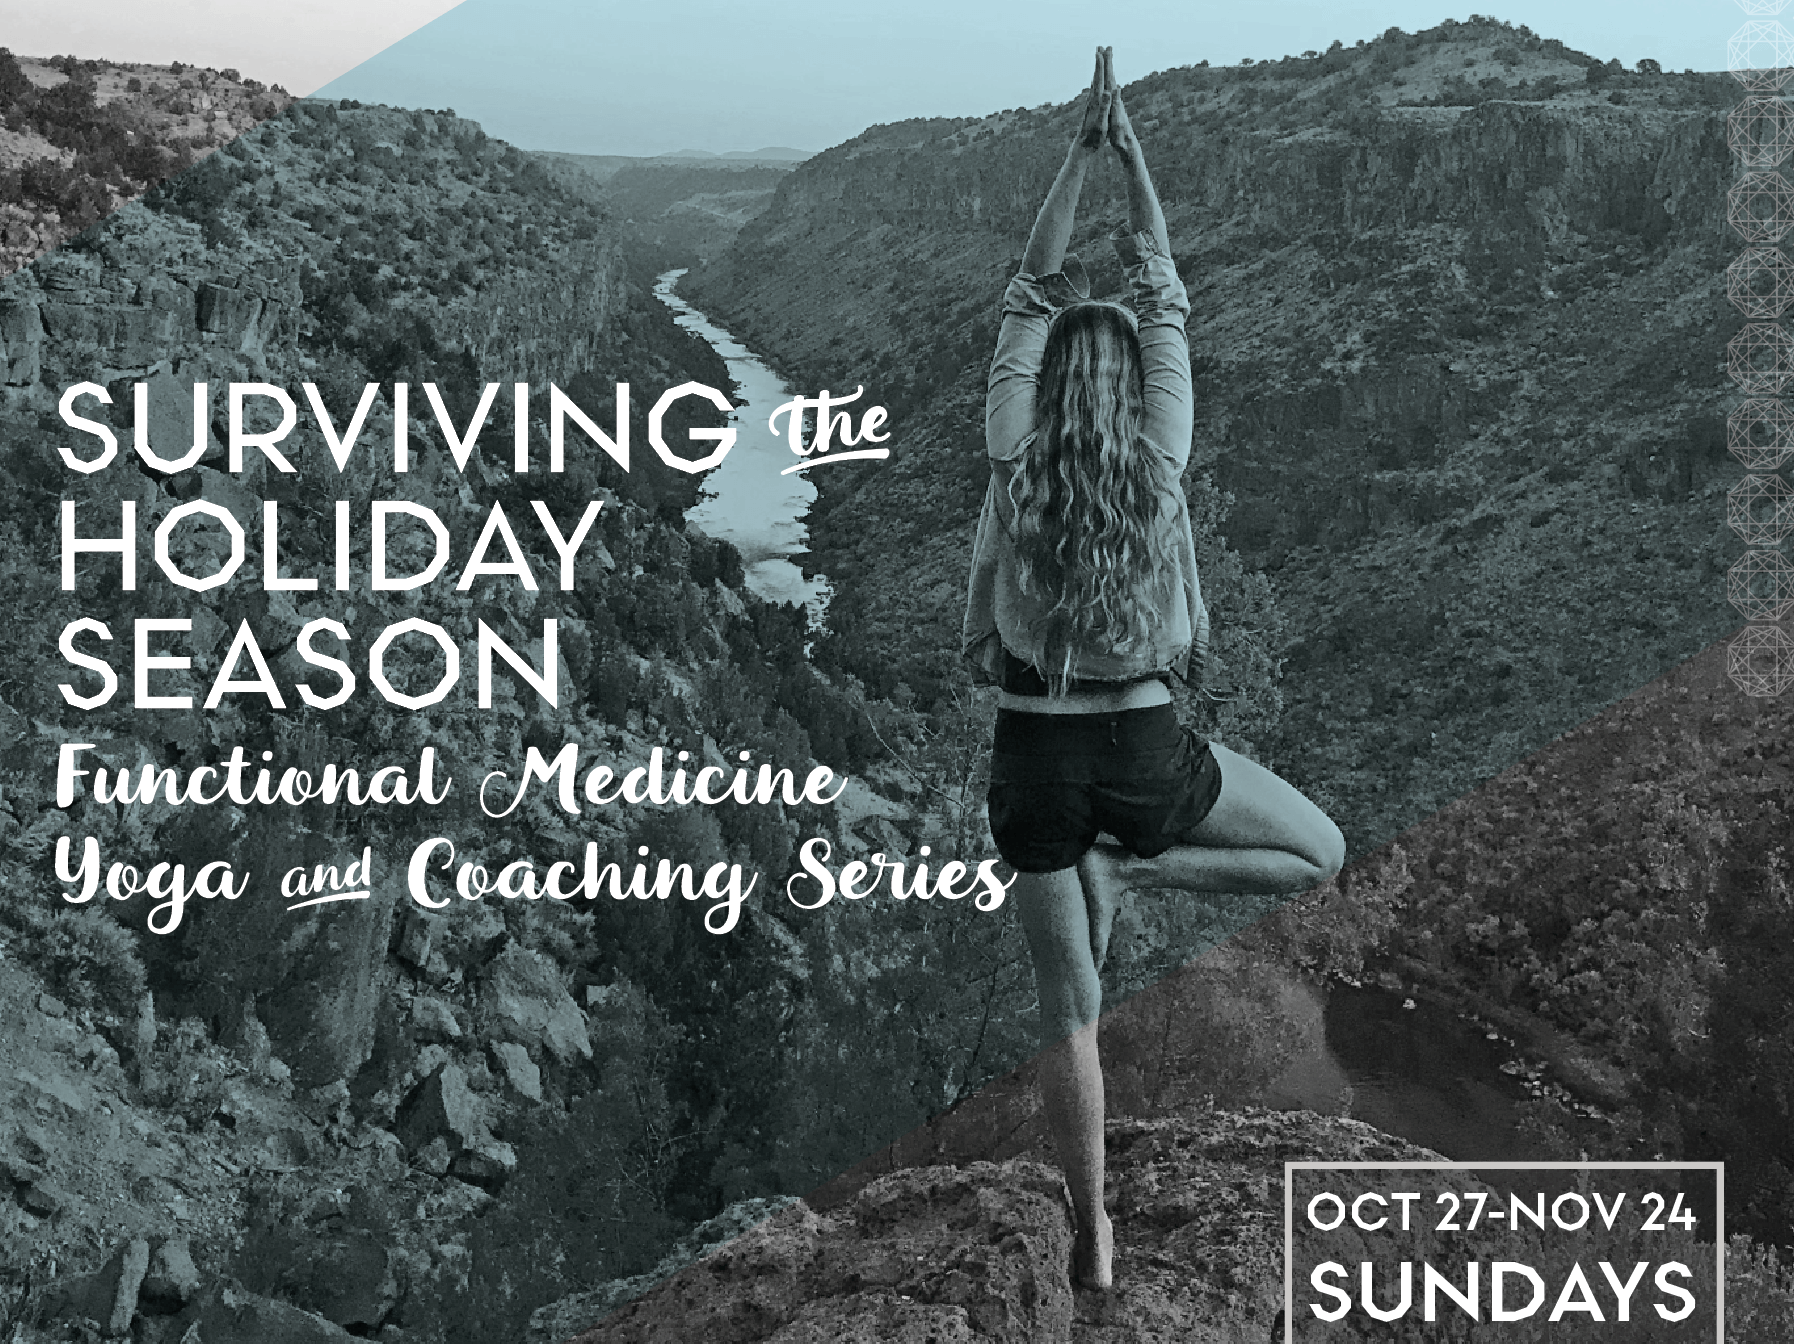 Surviving the Holiday Season: Functional Medicine Yoga and Coaching Series